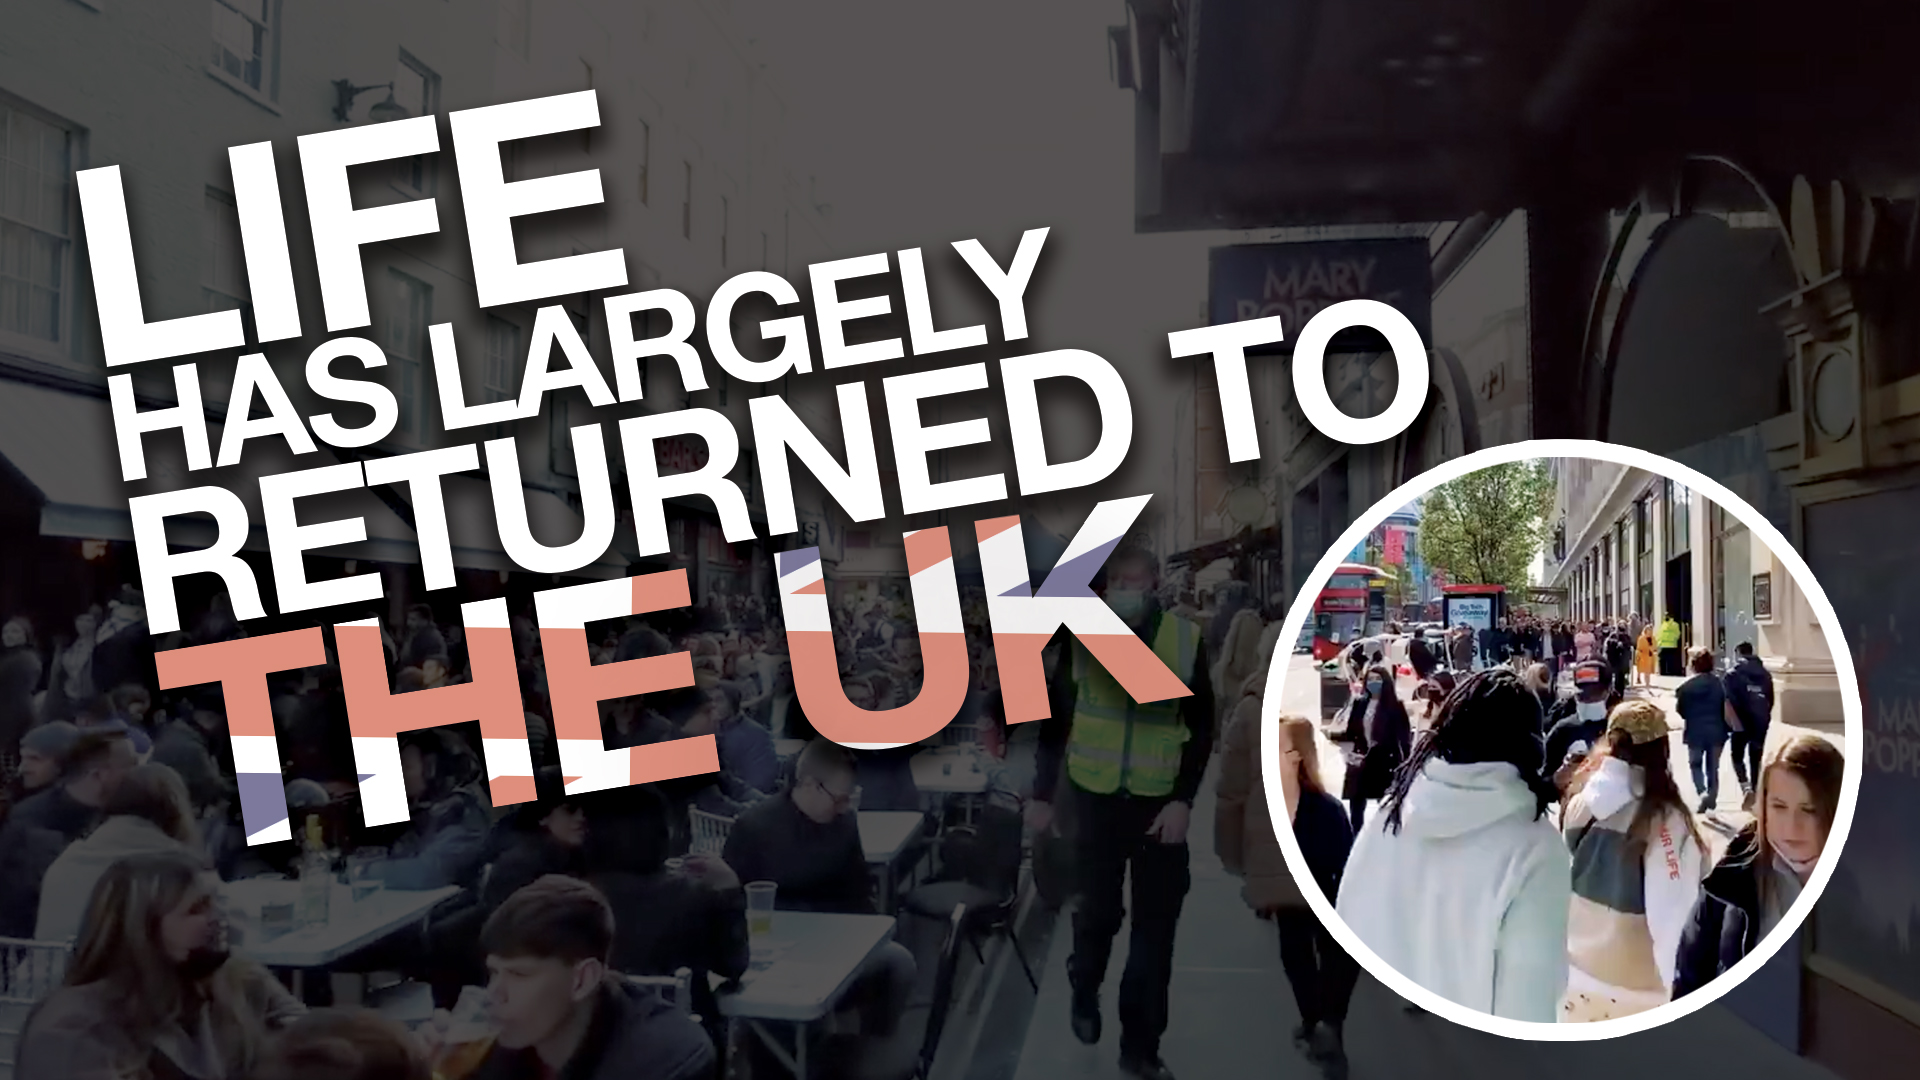 Rebel in London: Investigating the UK lockdown